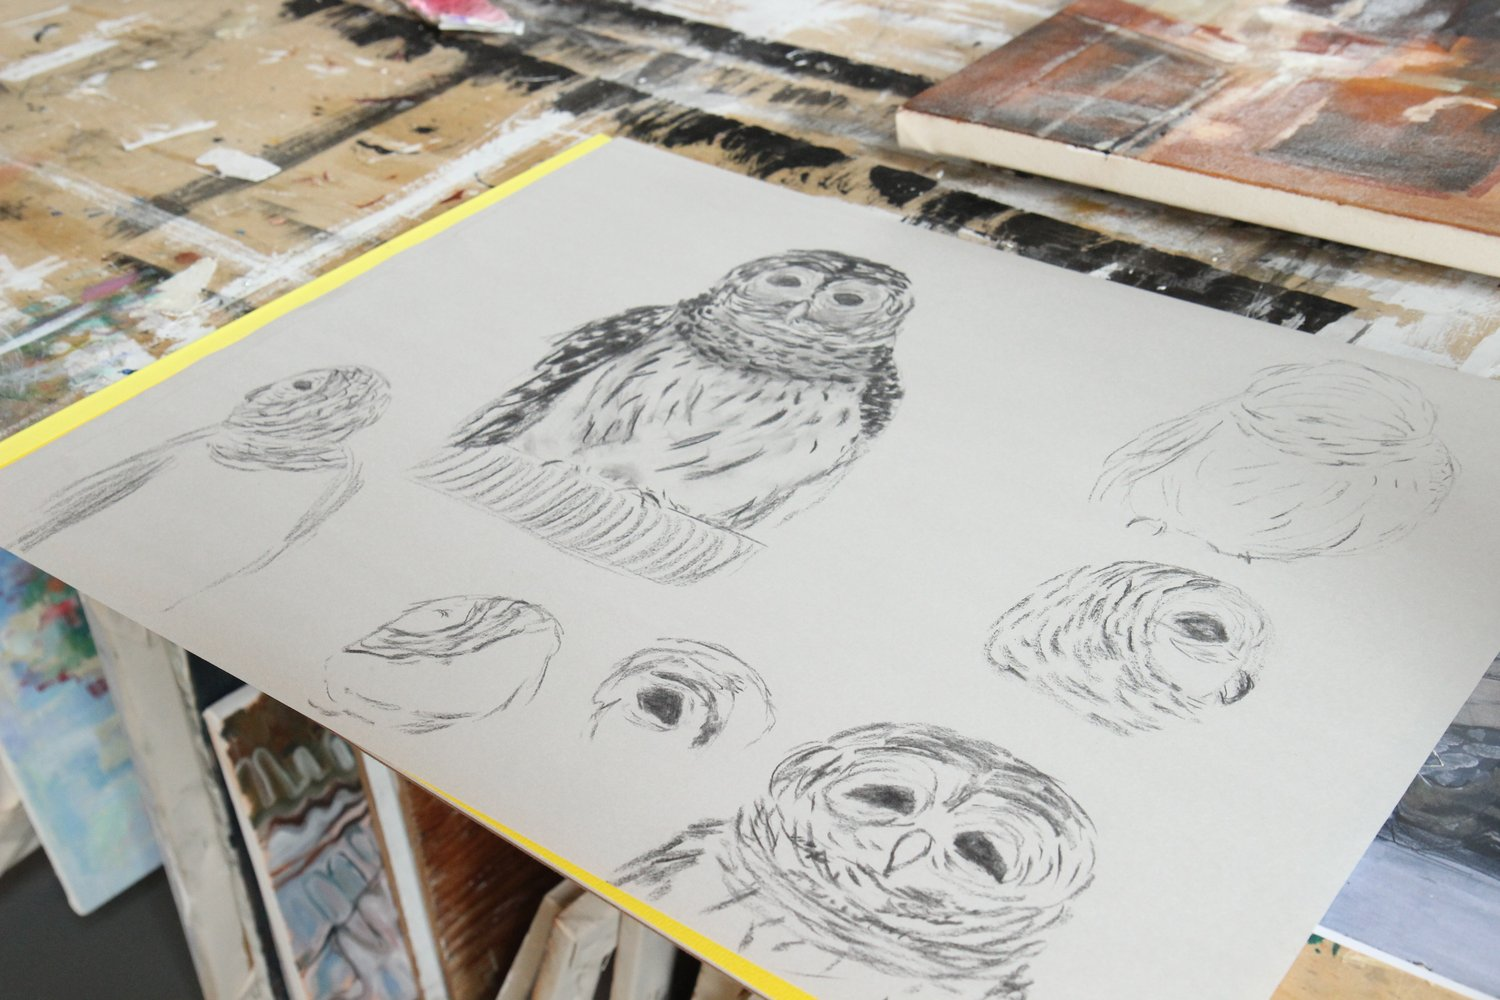 Owl Studies. Academy of Natural Sciences visits our studios for live bird studies in the Foundation Drawing class.